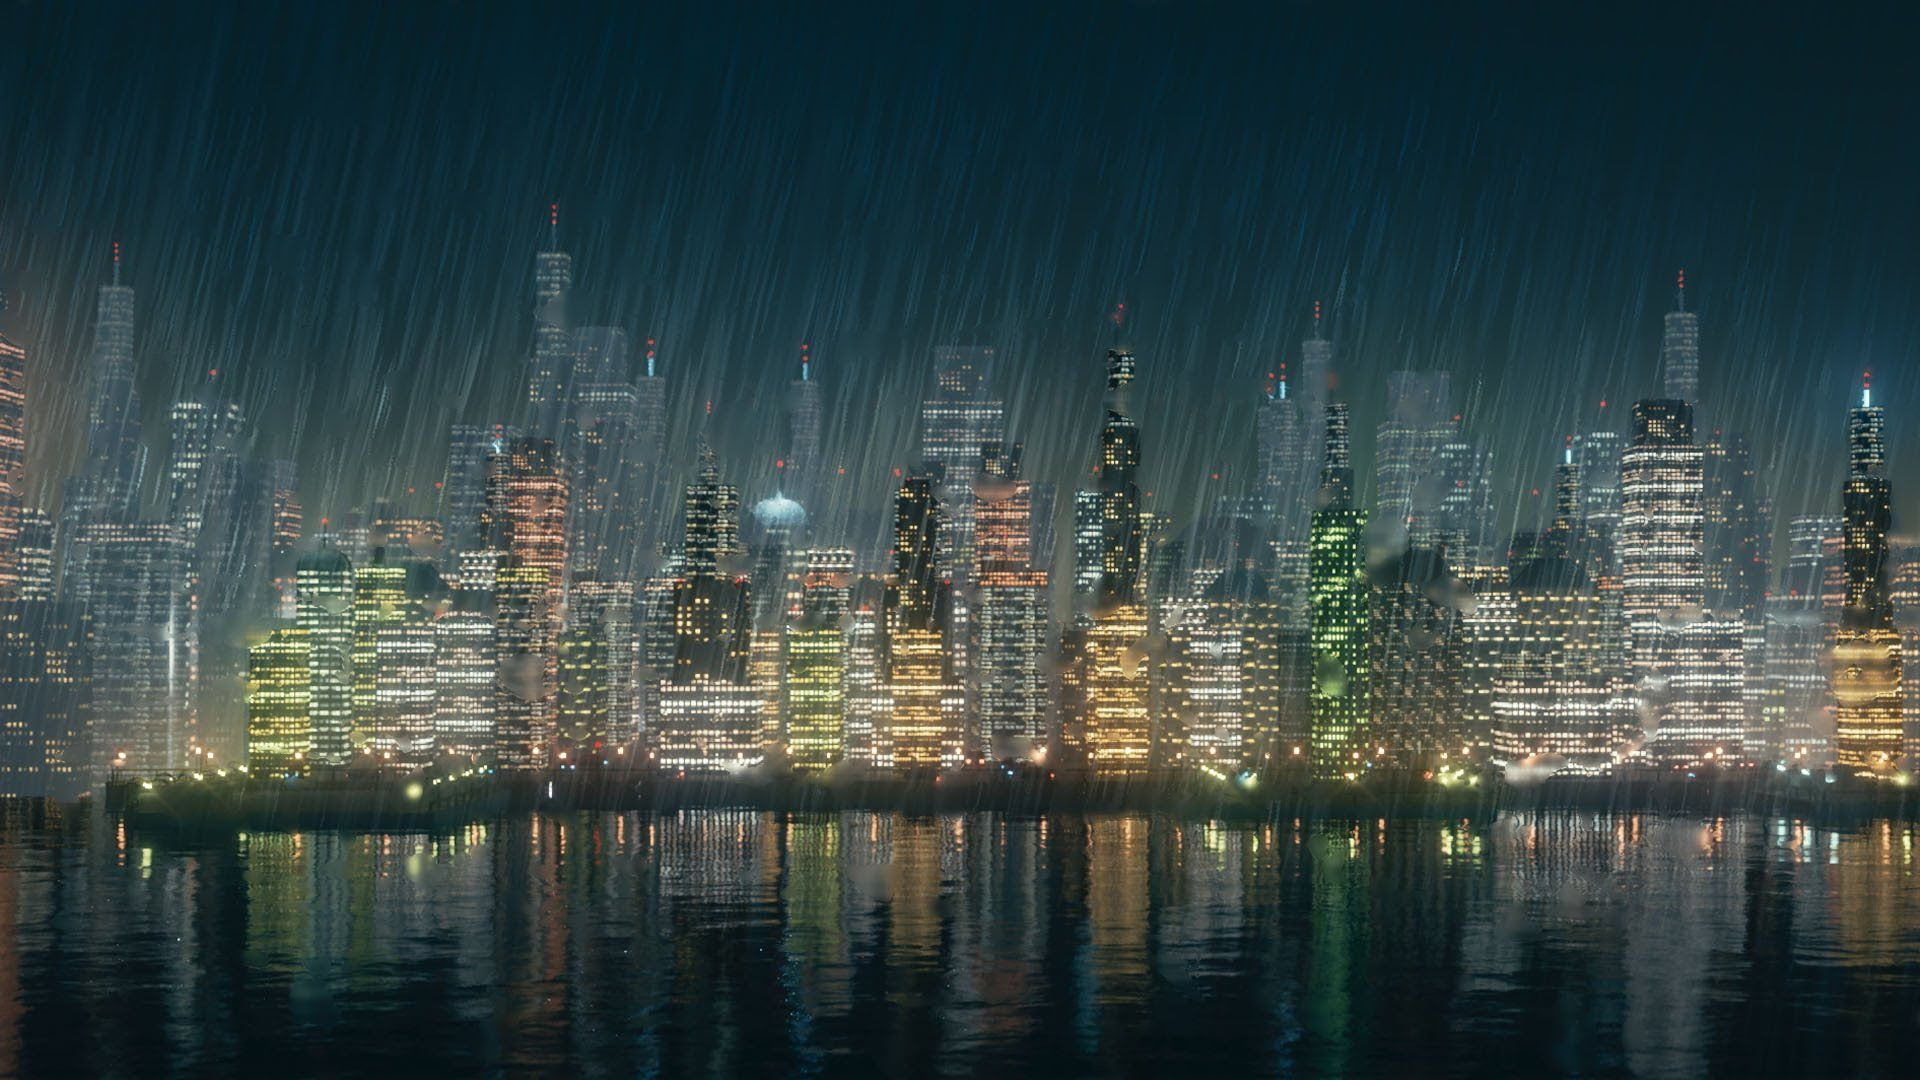 Create a beautiful city landscape at night with this new Blender